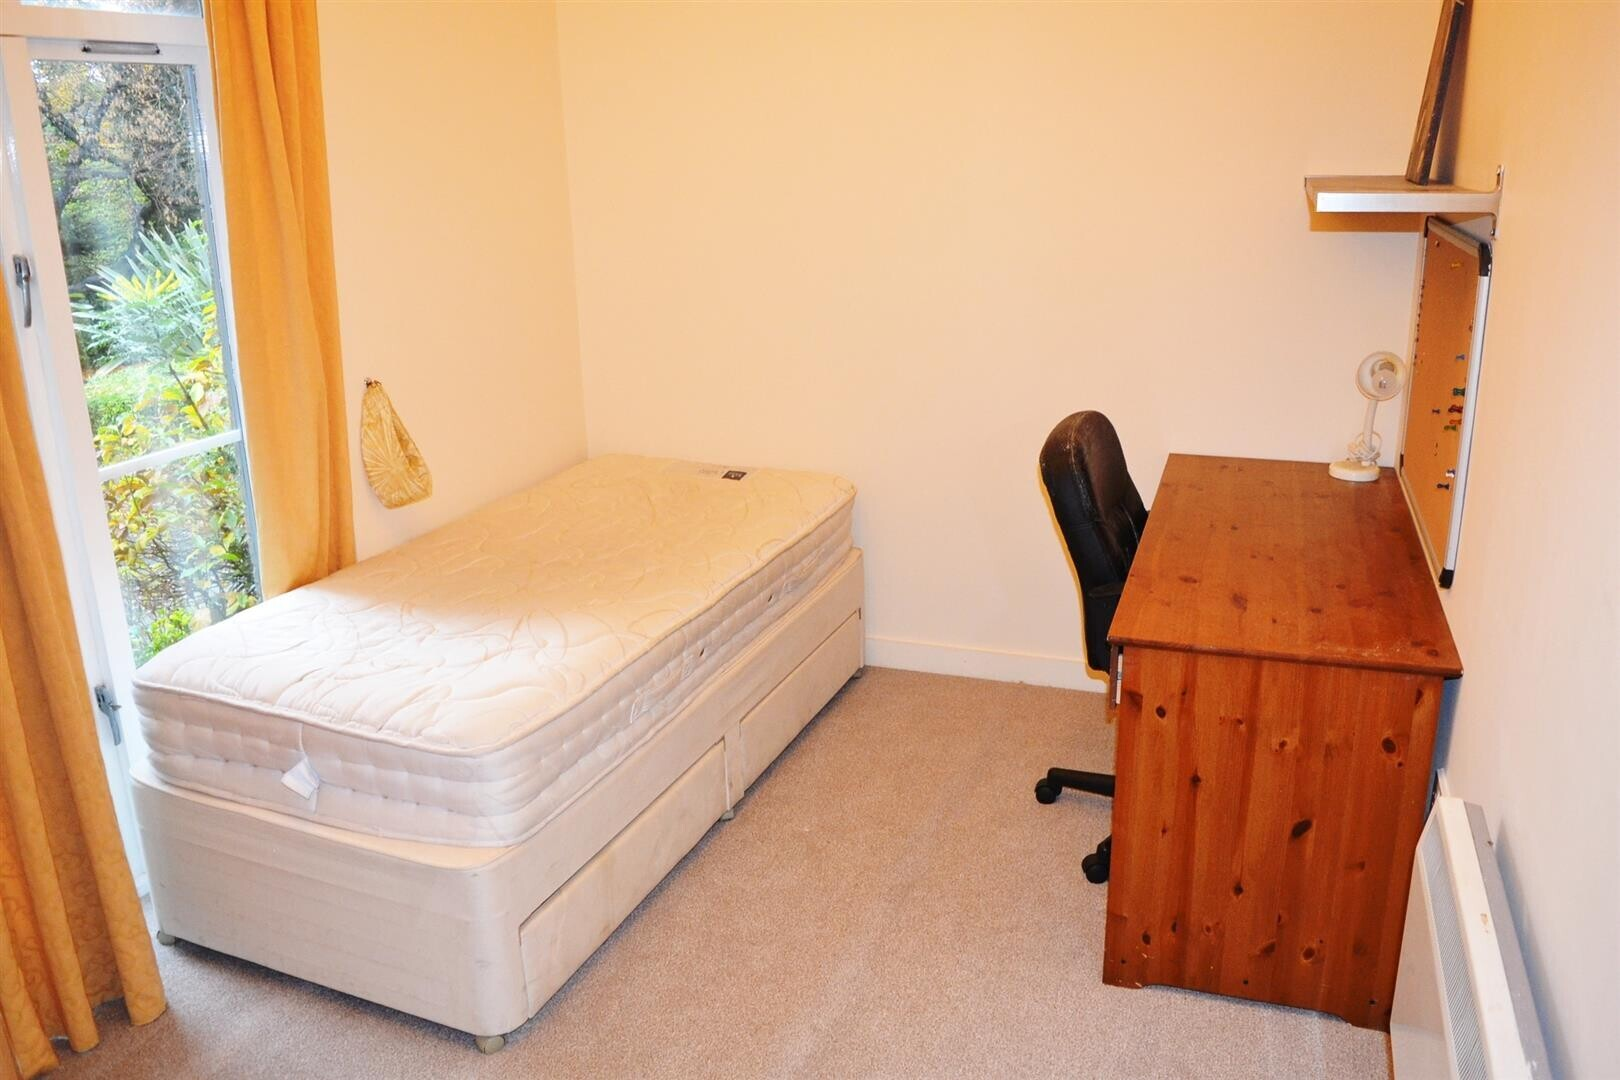 2 bedroom student house in Victoria Park, Manchester